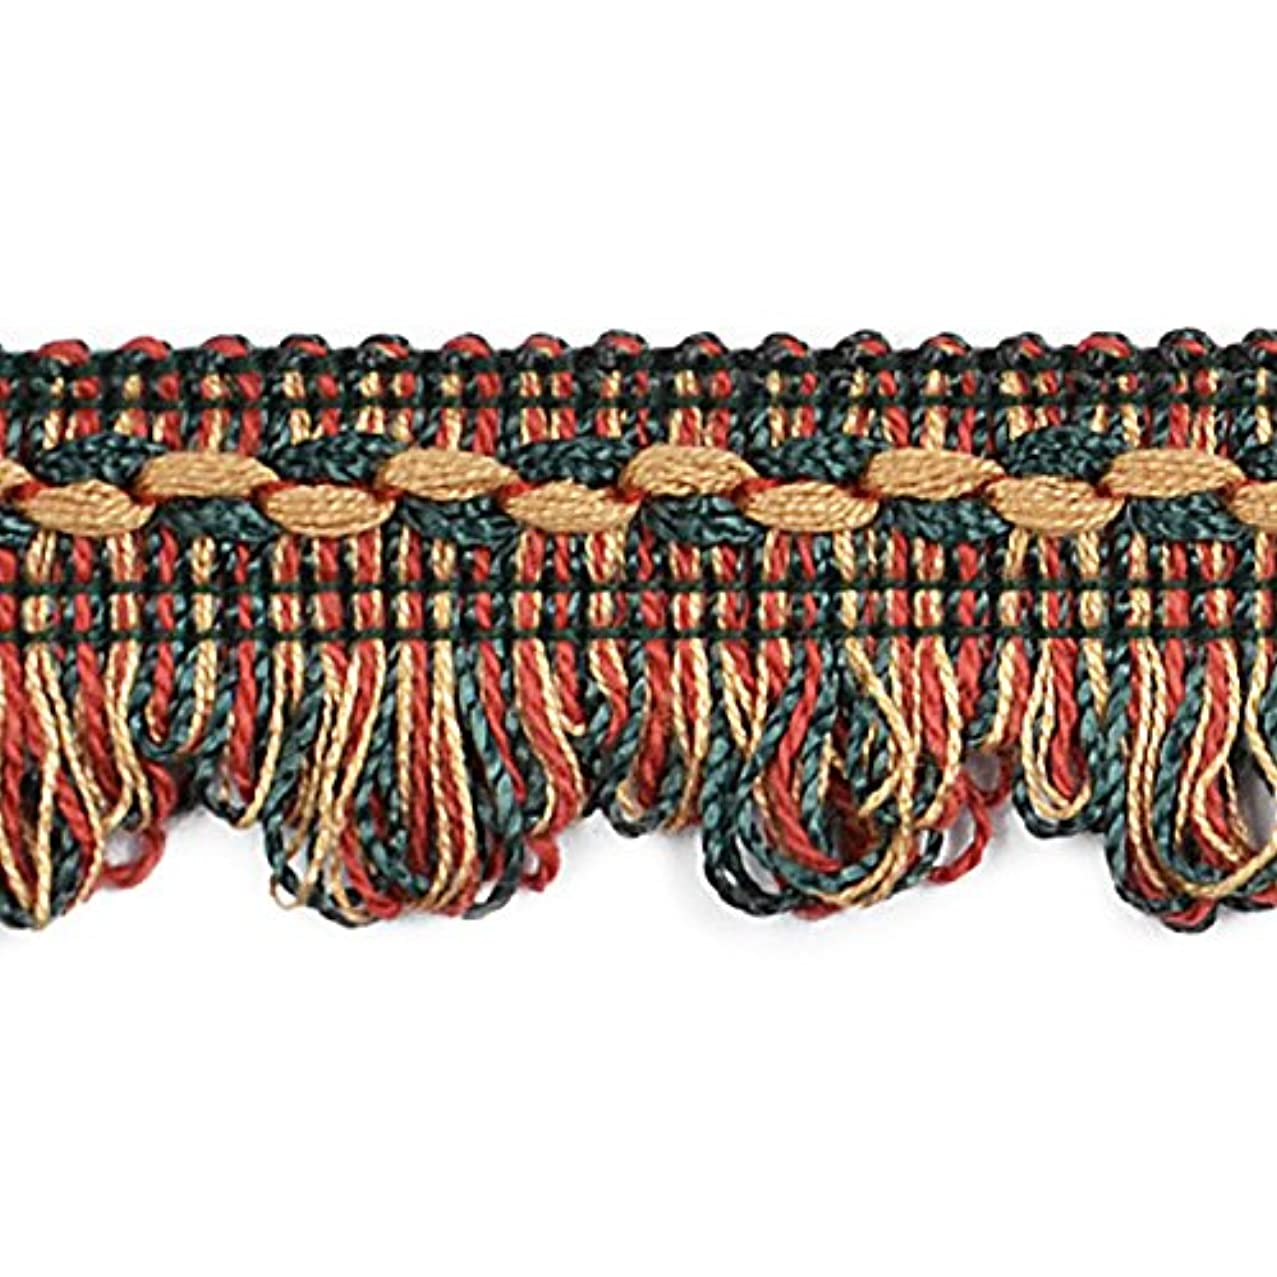 Expo CN022043P50-24 24 yds of 1 1/4